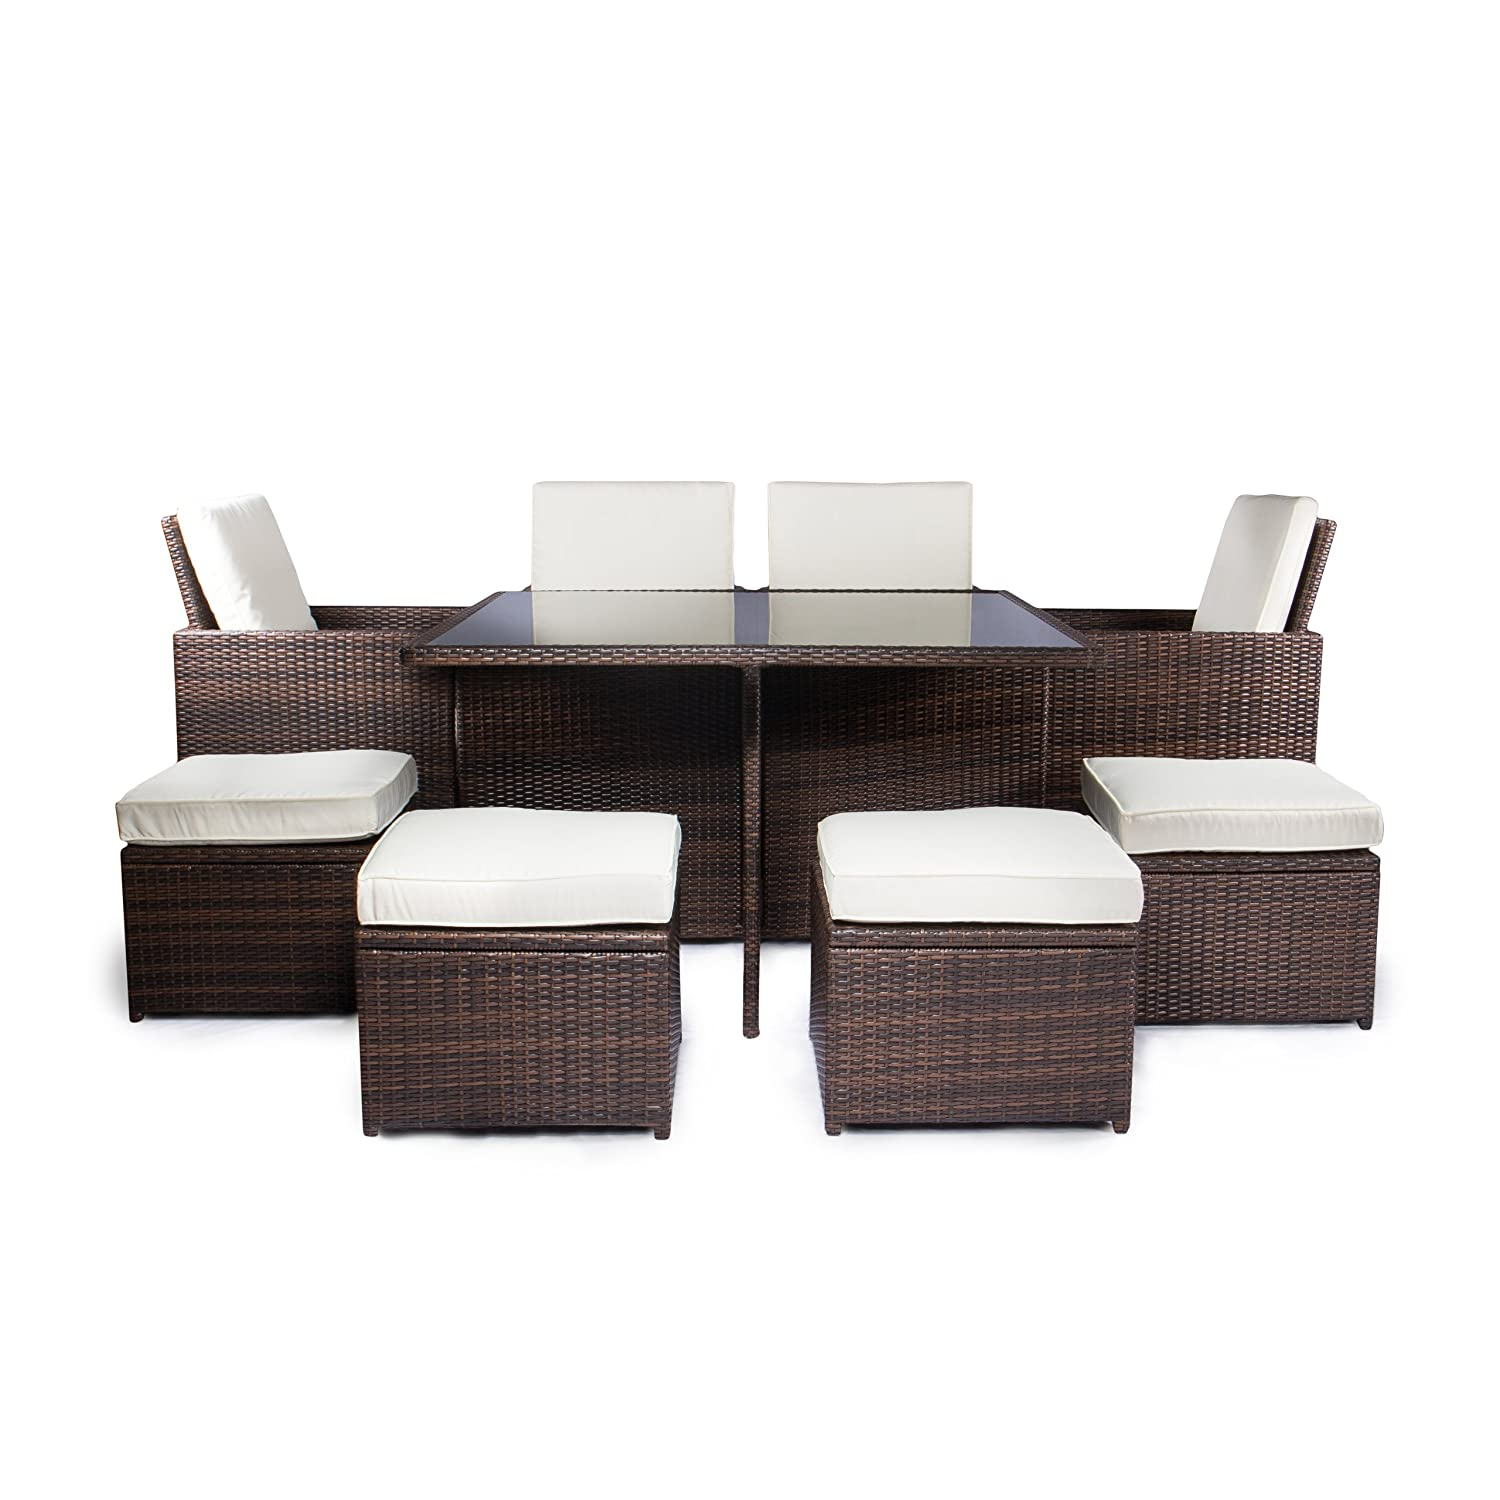 vanage gartenm bel sets gartengarnitur gartenm bel chill und lounge set sydney braun creme. Black Bedroom Furniture Sets. Home Design Ideas